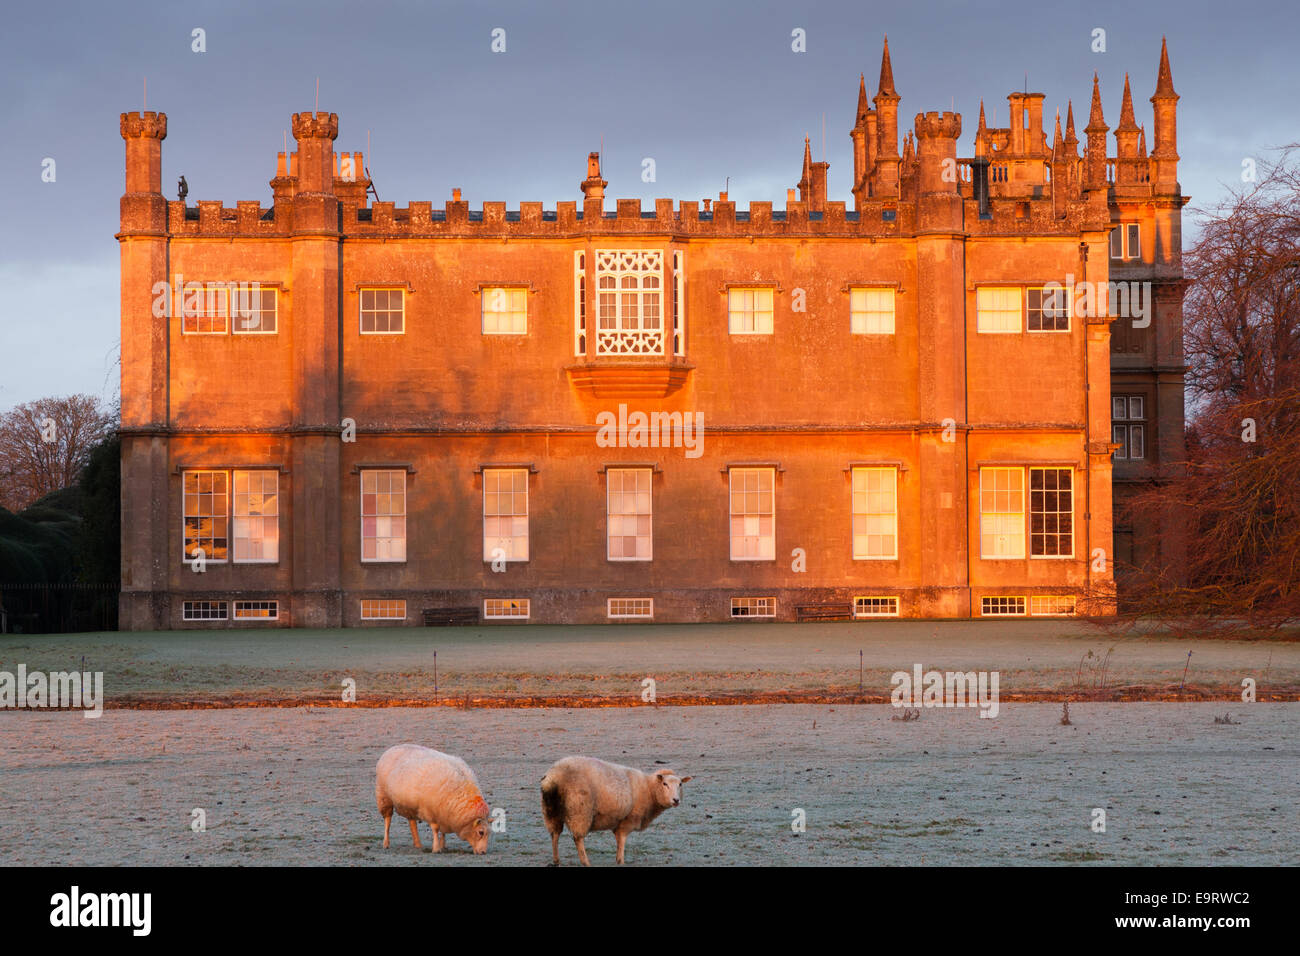 Corsham Court at sunrise, lit by the rays of the rising sun - Stock Image